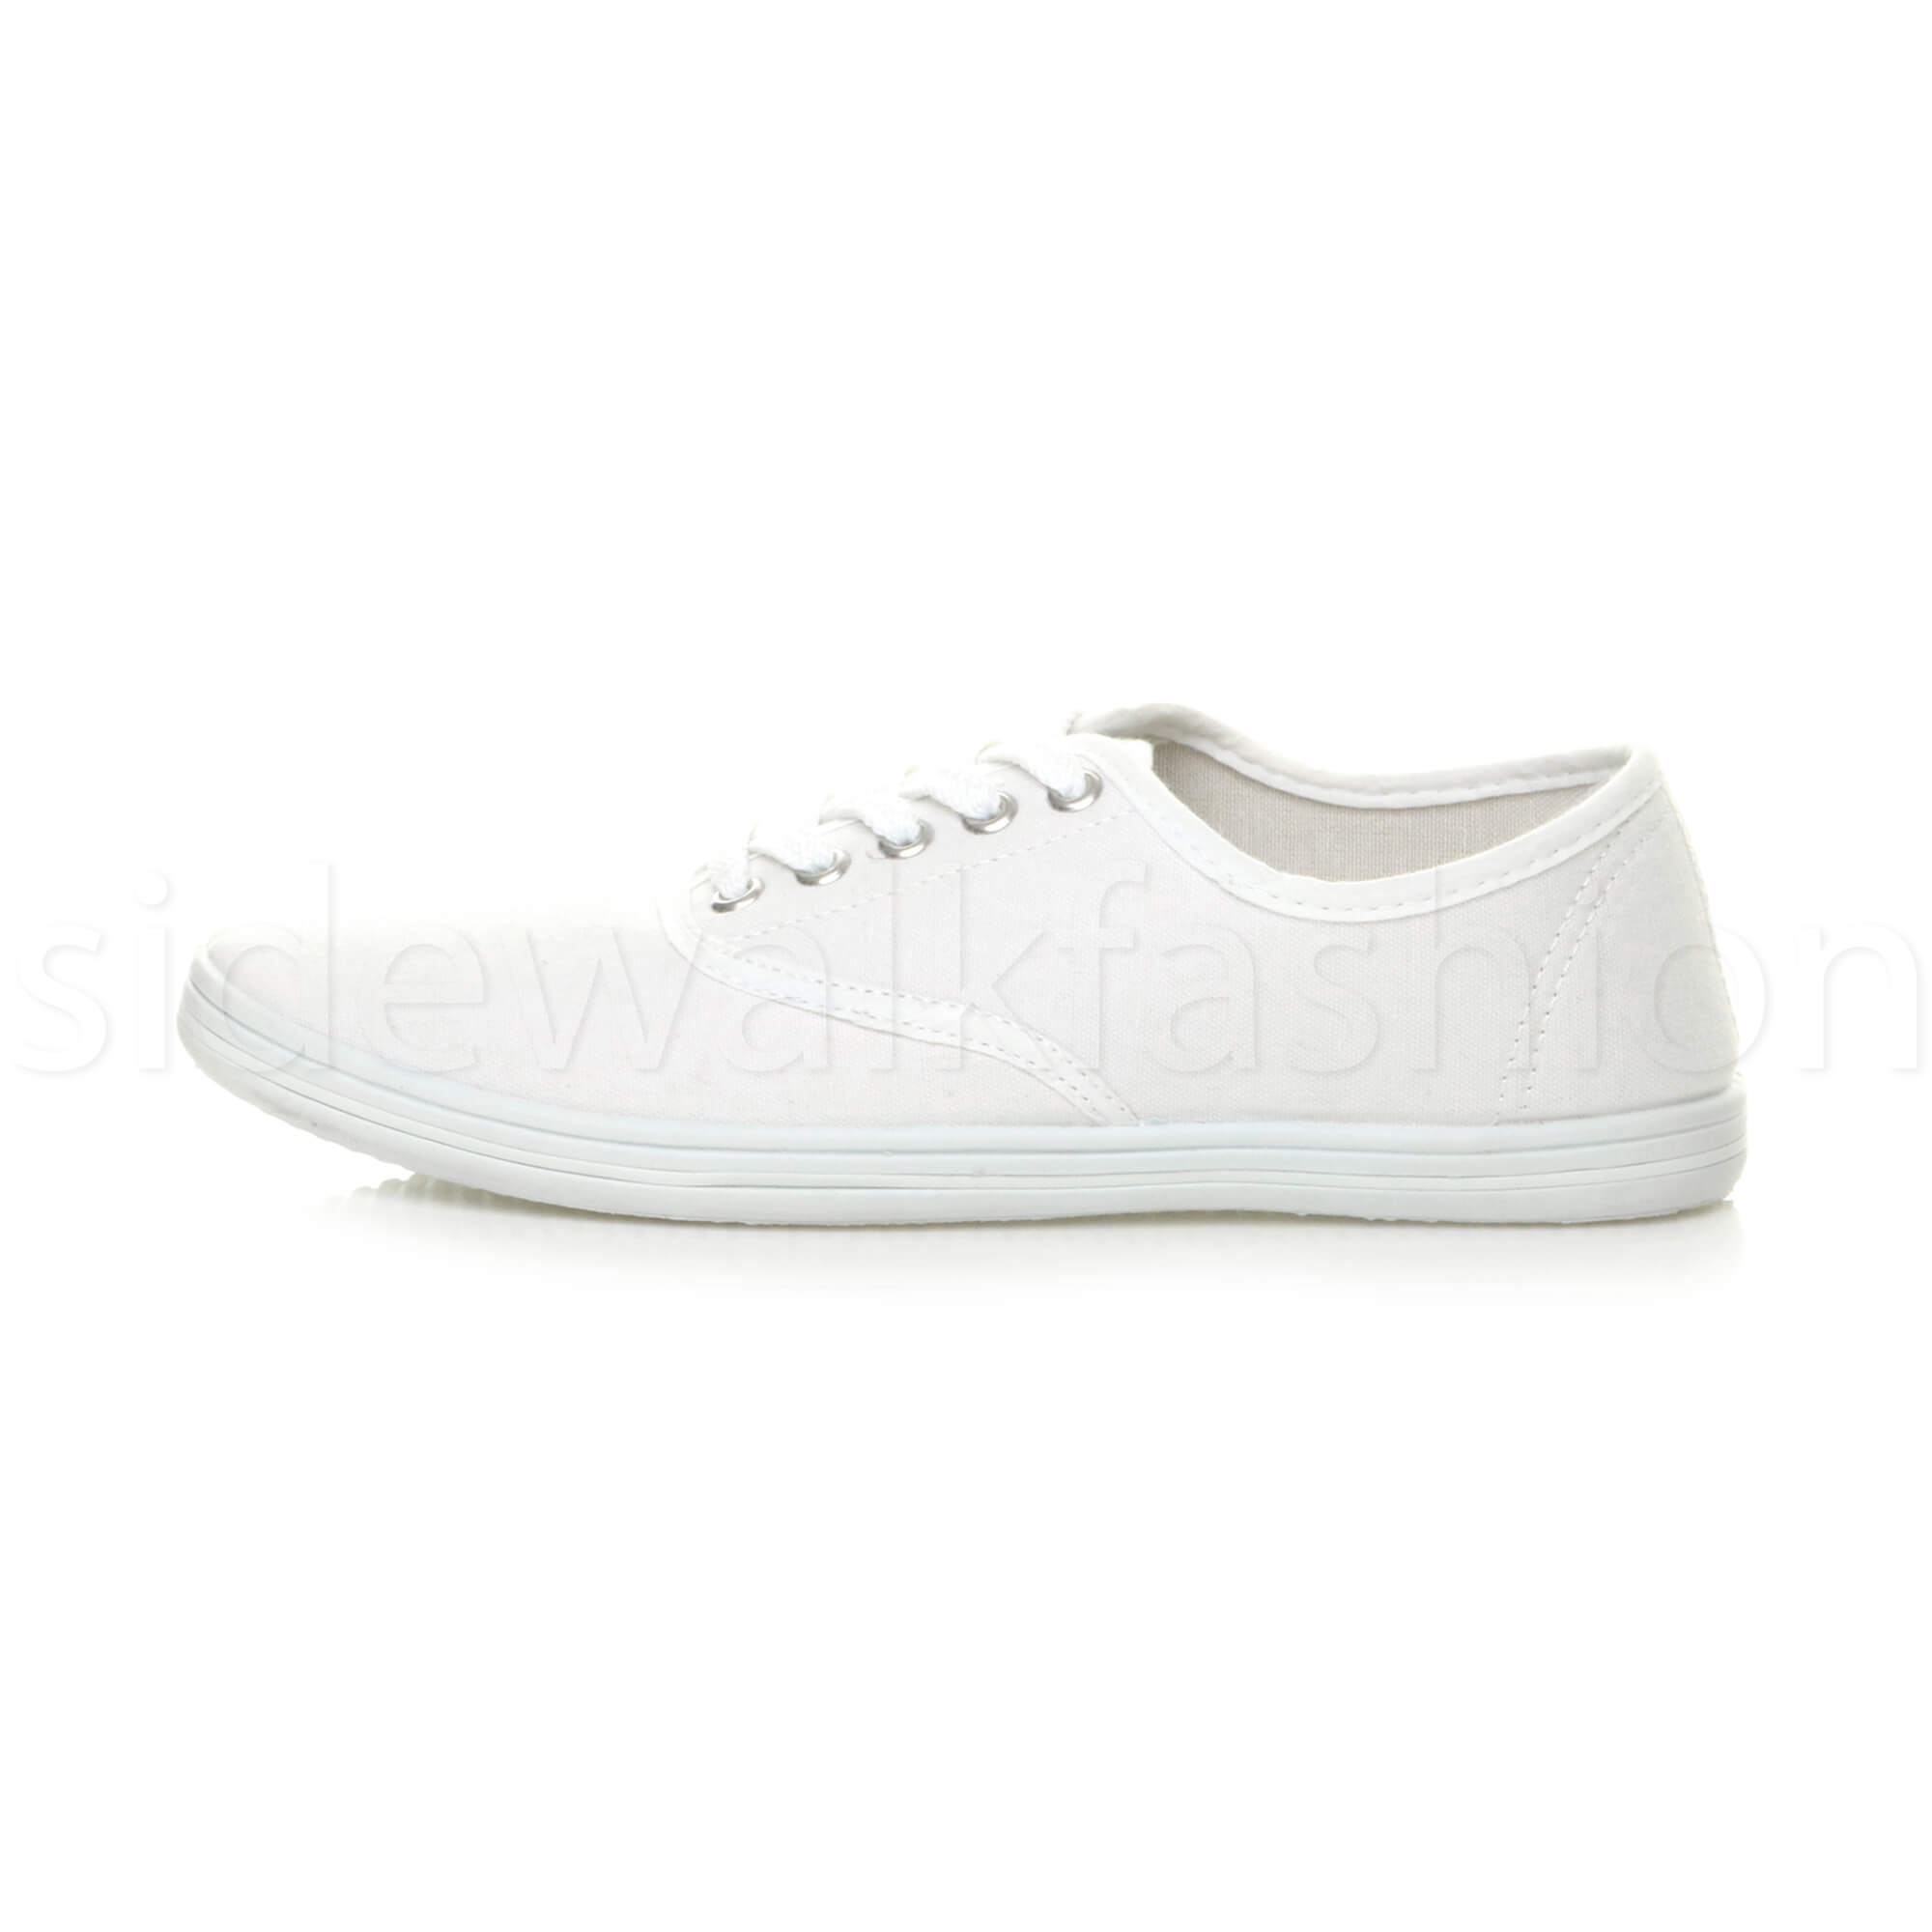 Mens-canvas-trainers-plimsoles-plimsolls-shoes-lace-up-pumps-size thumbnail 24